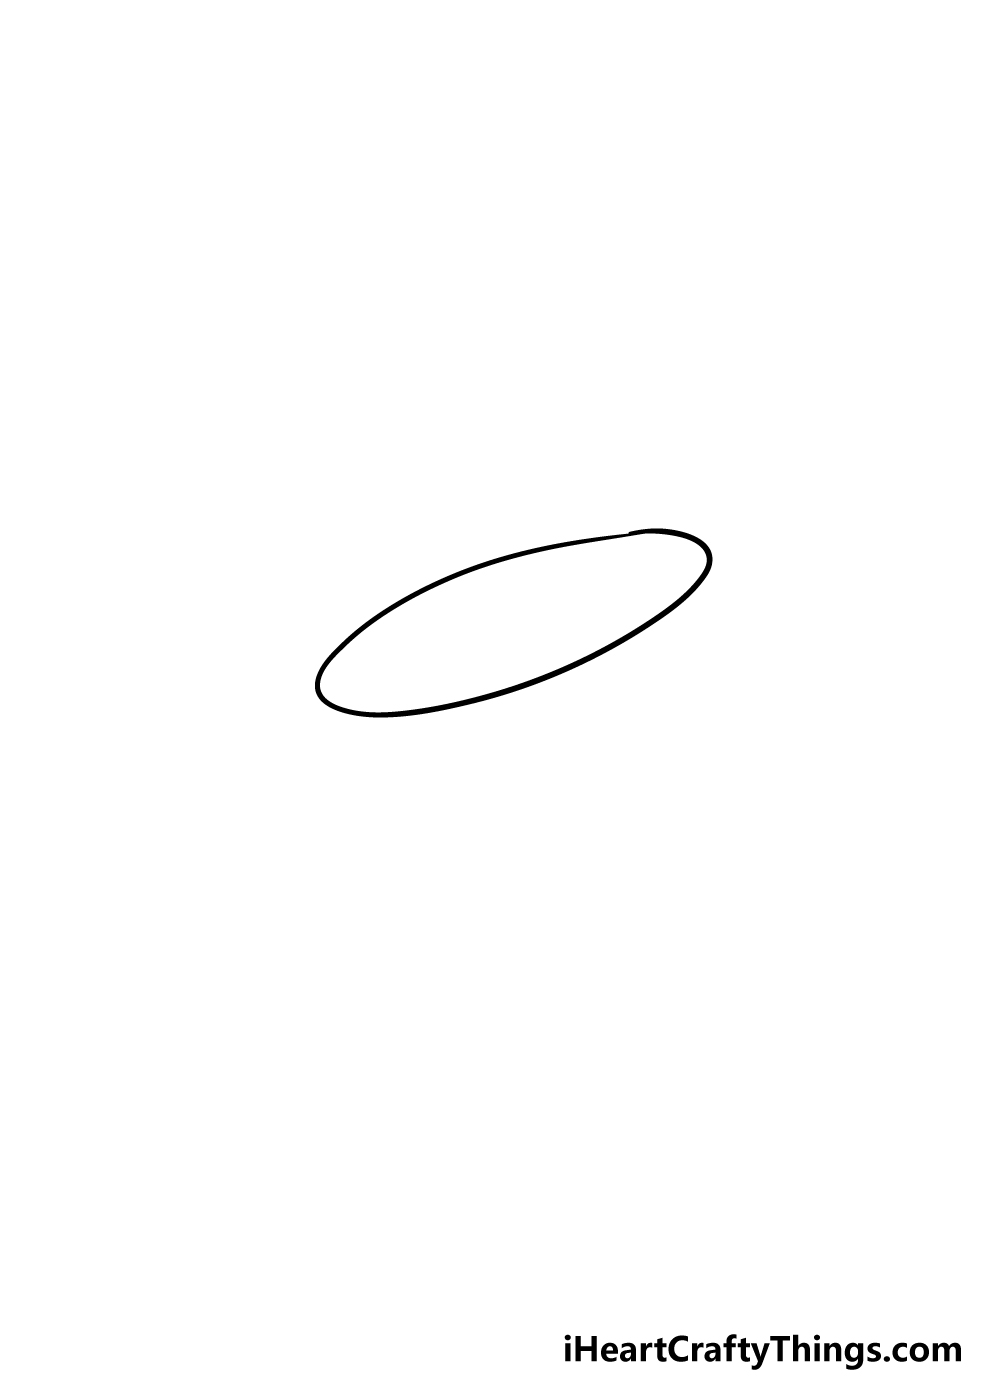 hat drawing step 1